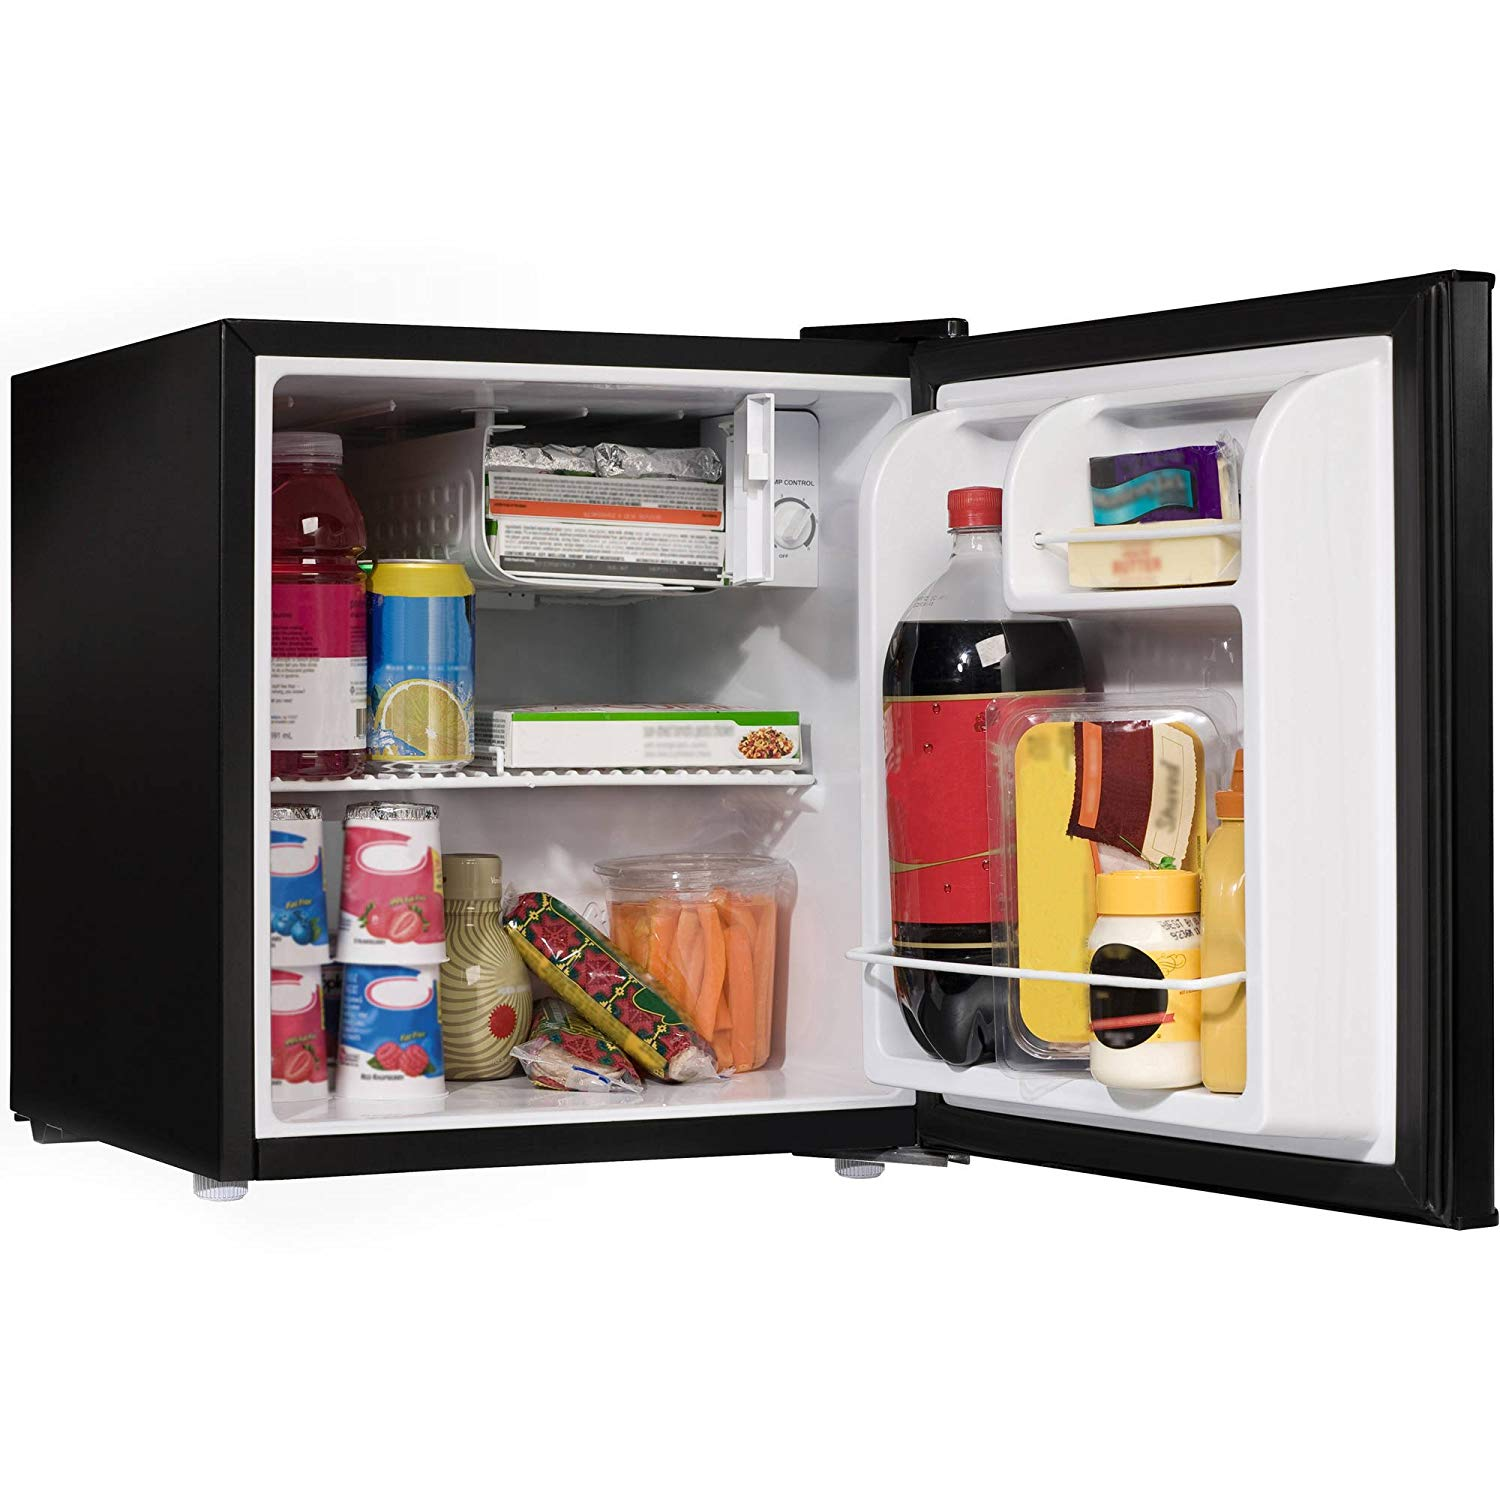 1.7 cubic feet Galanz compact Refrigerator